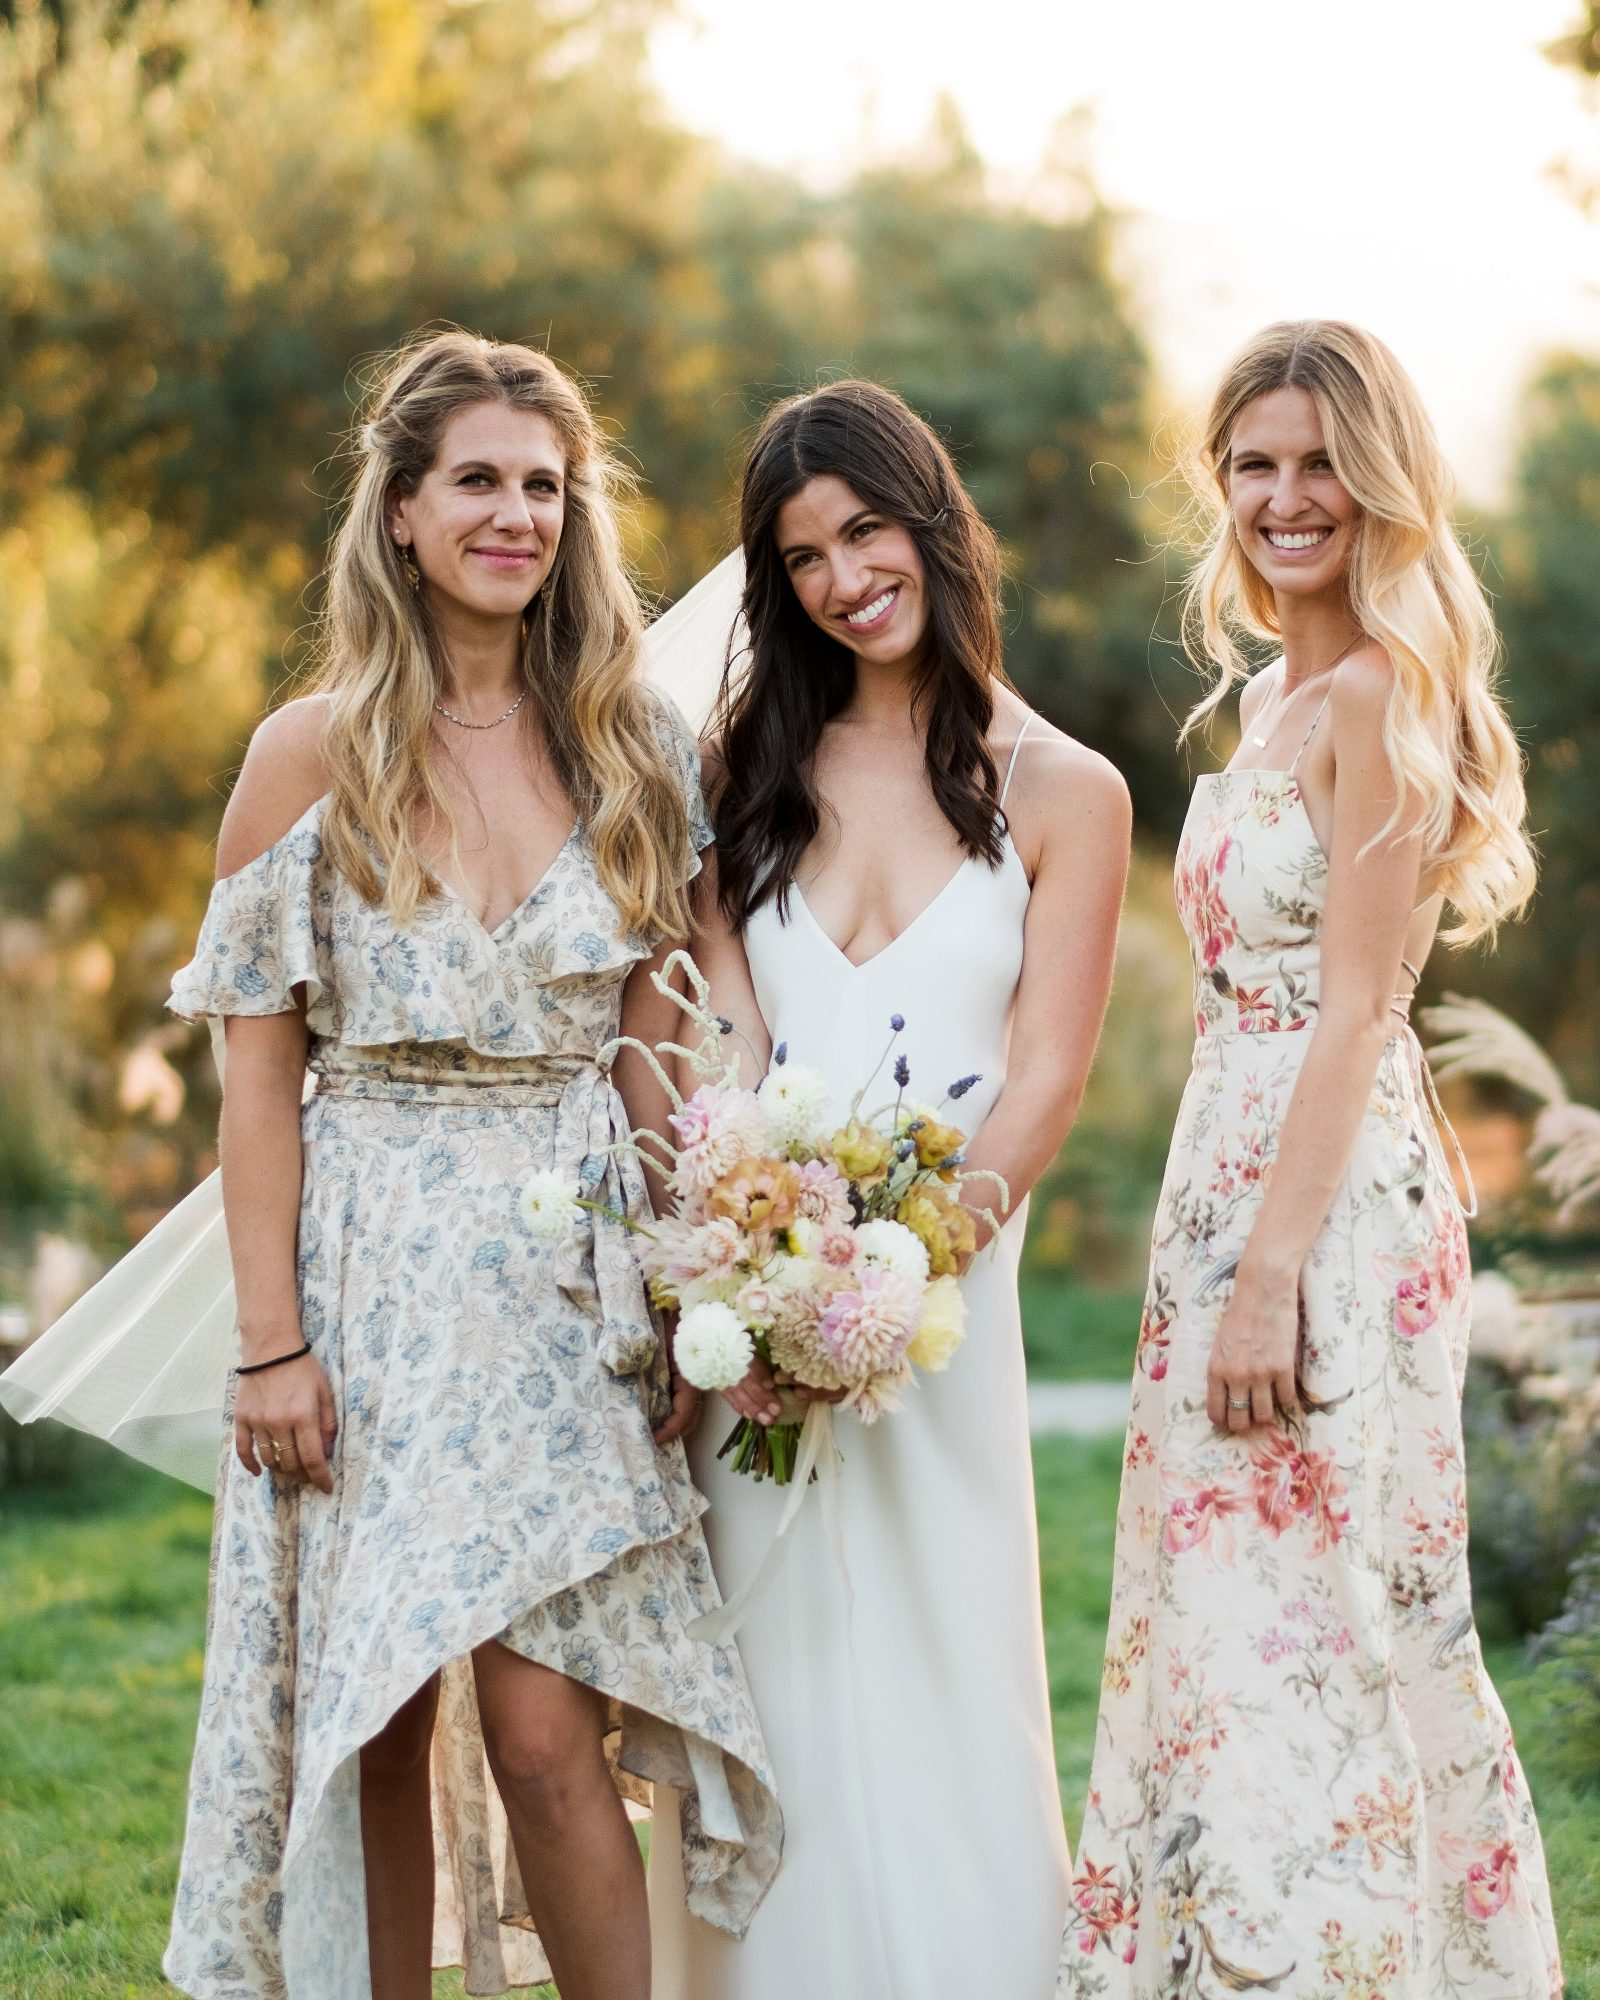 anika max wedding bridesmaids wearing floral mismatched dresses